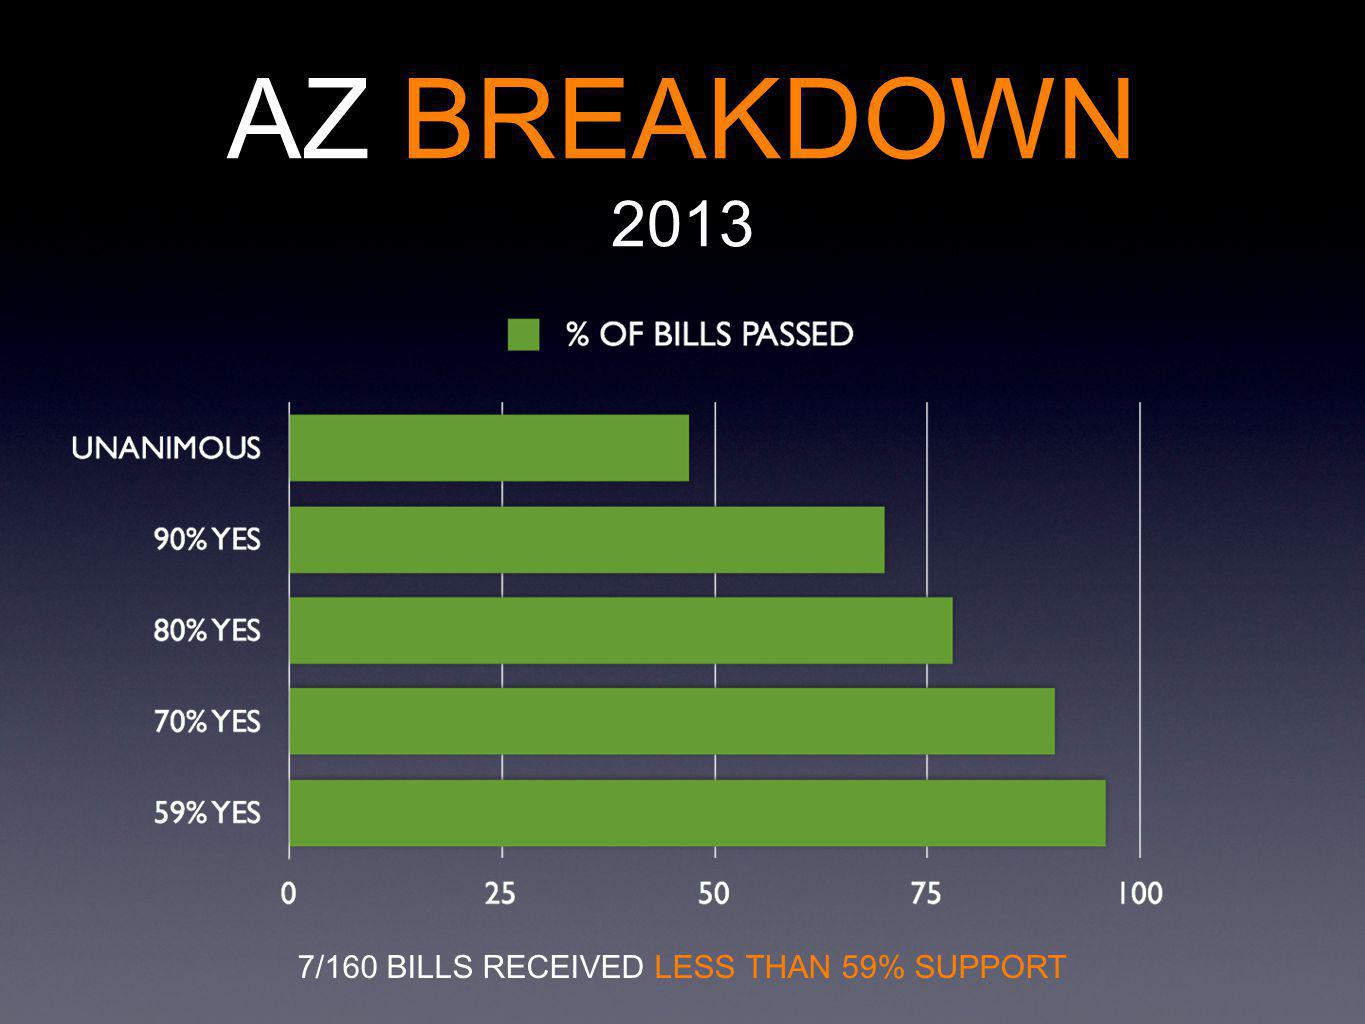 AZ BREAKDOWN 2013 7/160 BILLS RECEIVED LESS THAN 59% SUPPORT